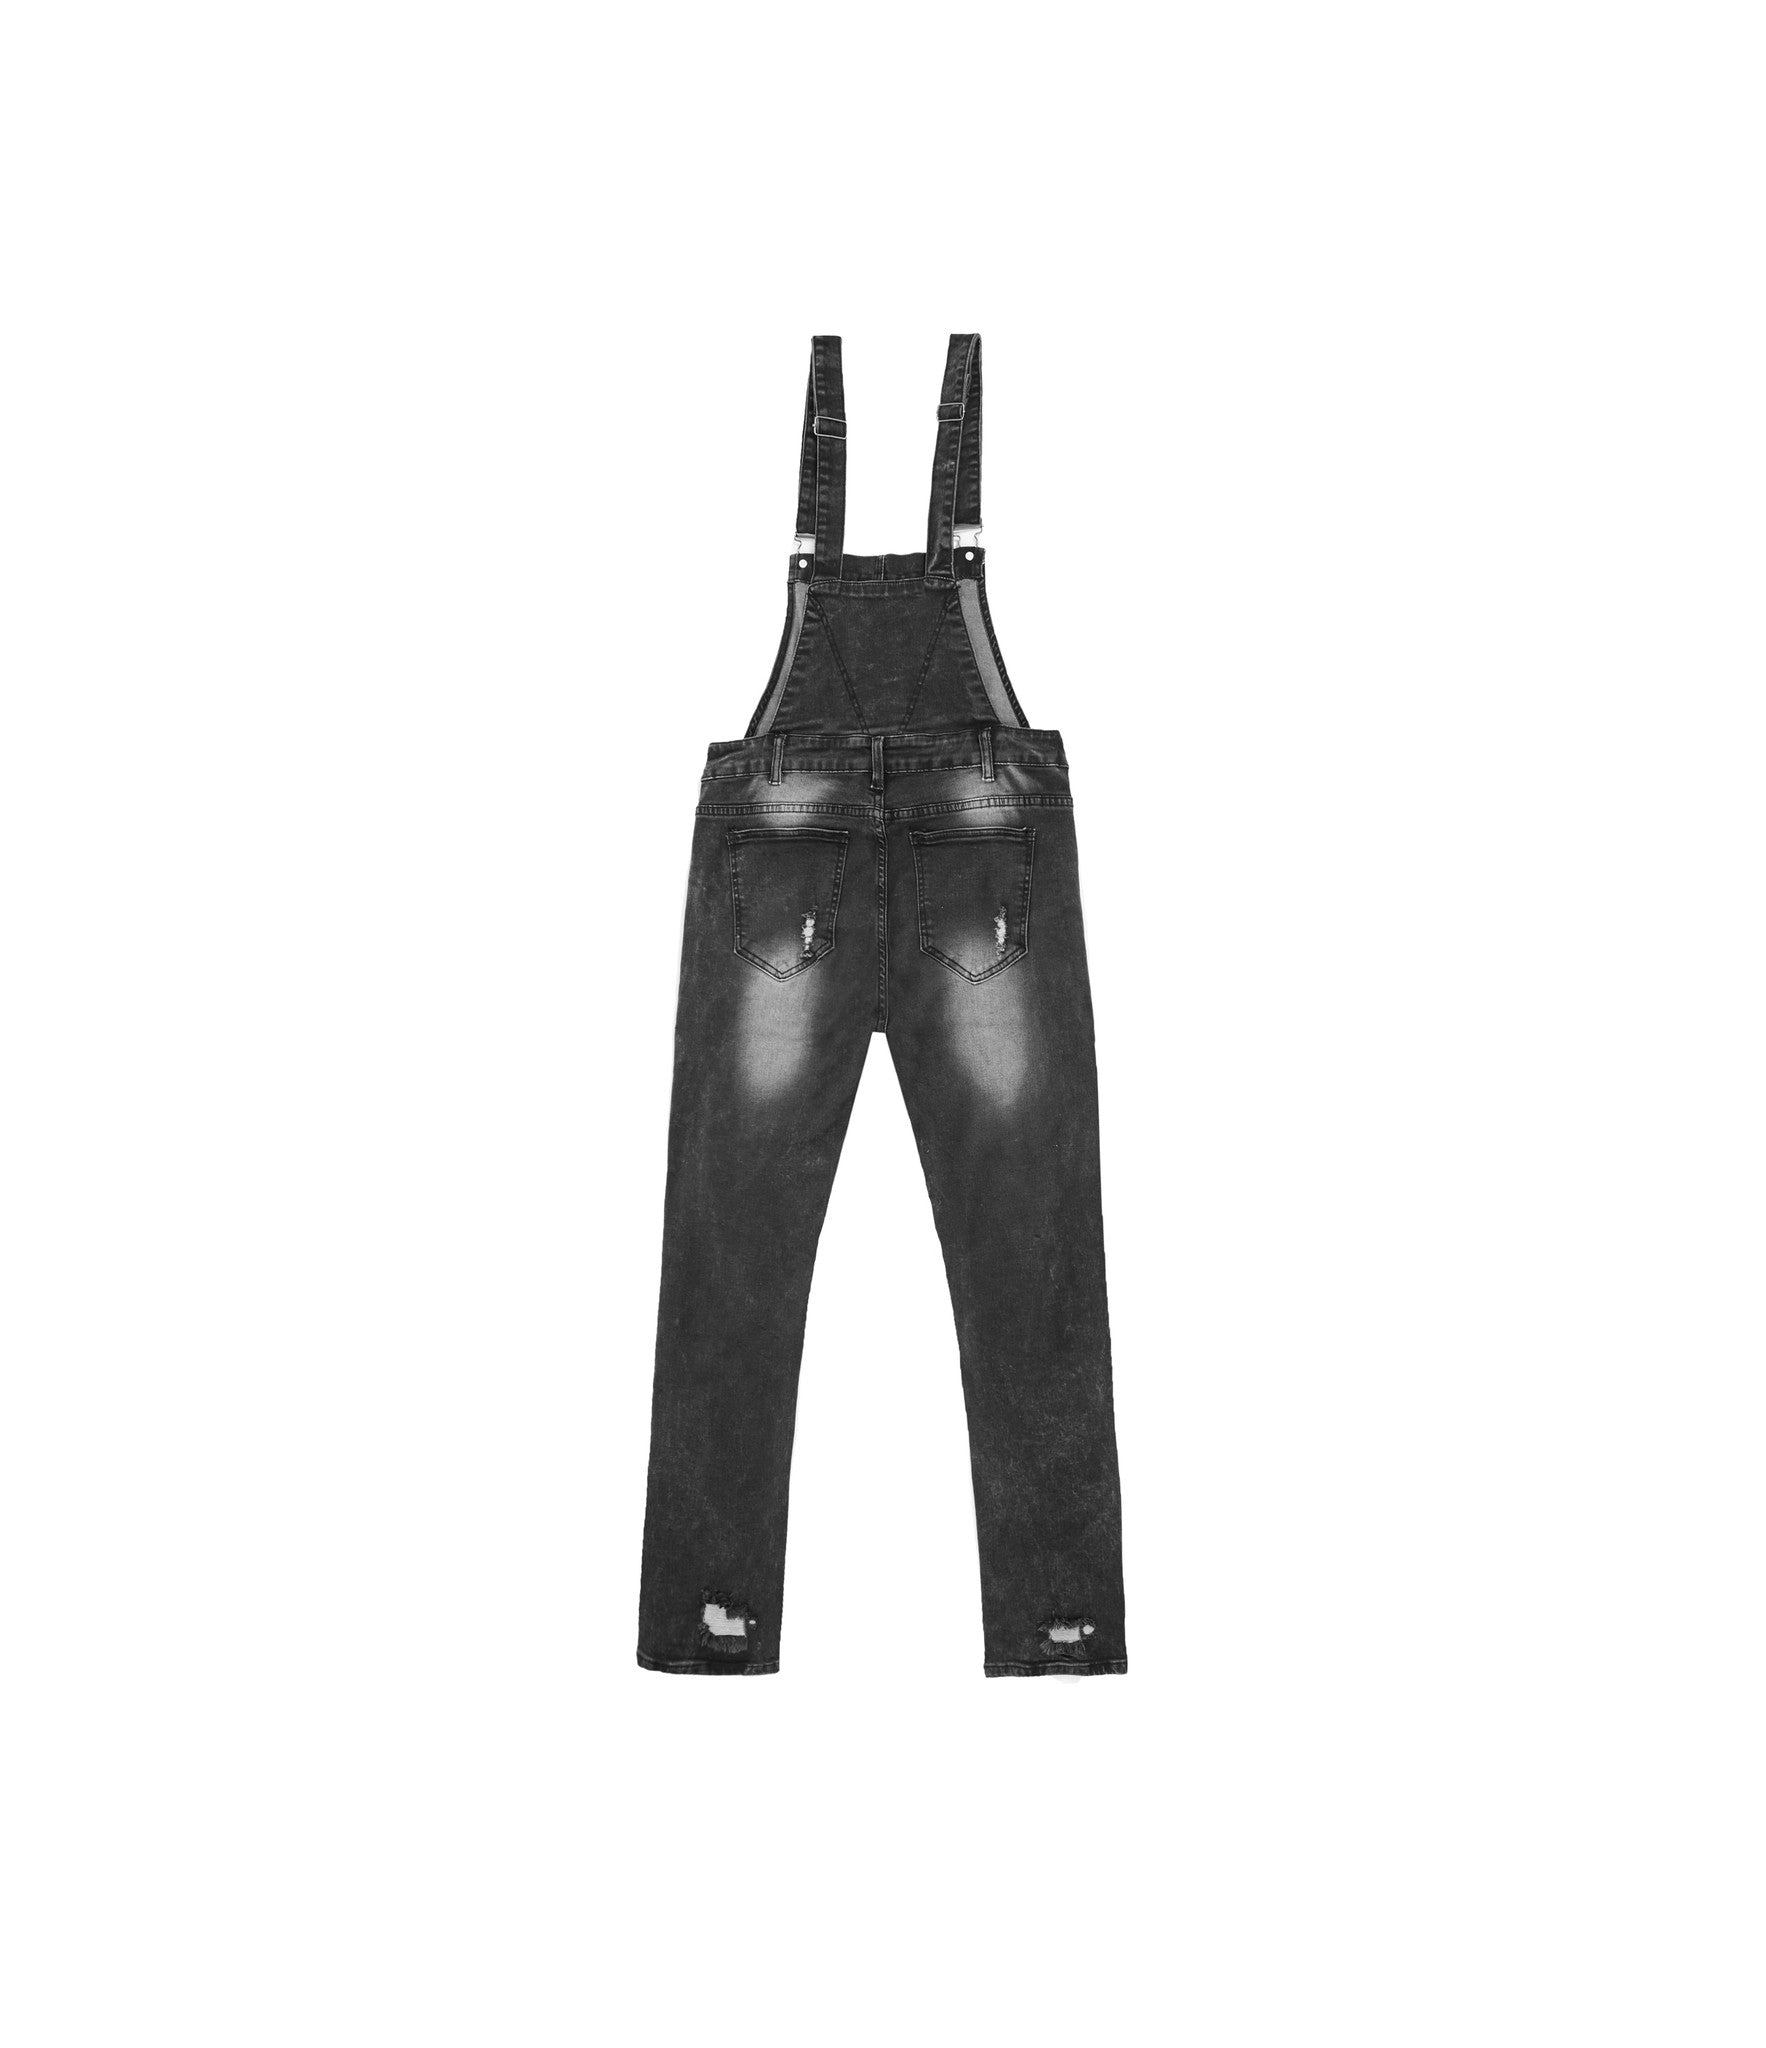 JN181 Distressed Stone Wash Dungaree Denim - Black - underated london - underatedco - 2